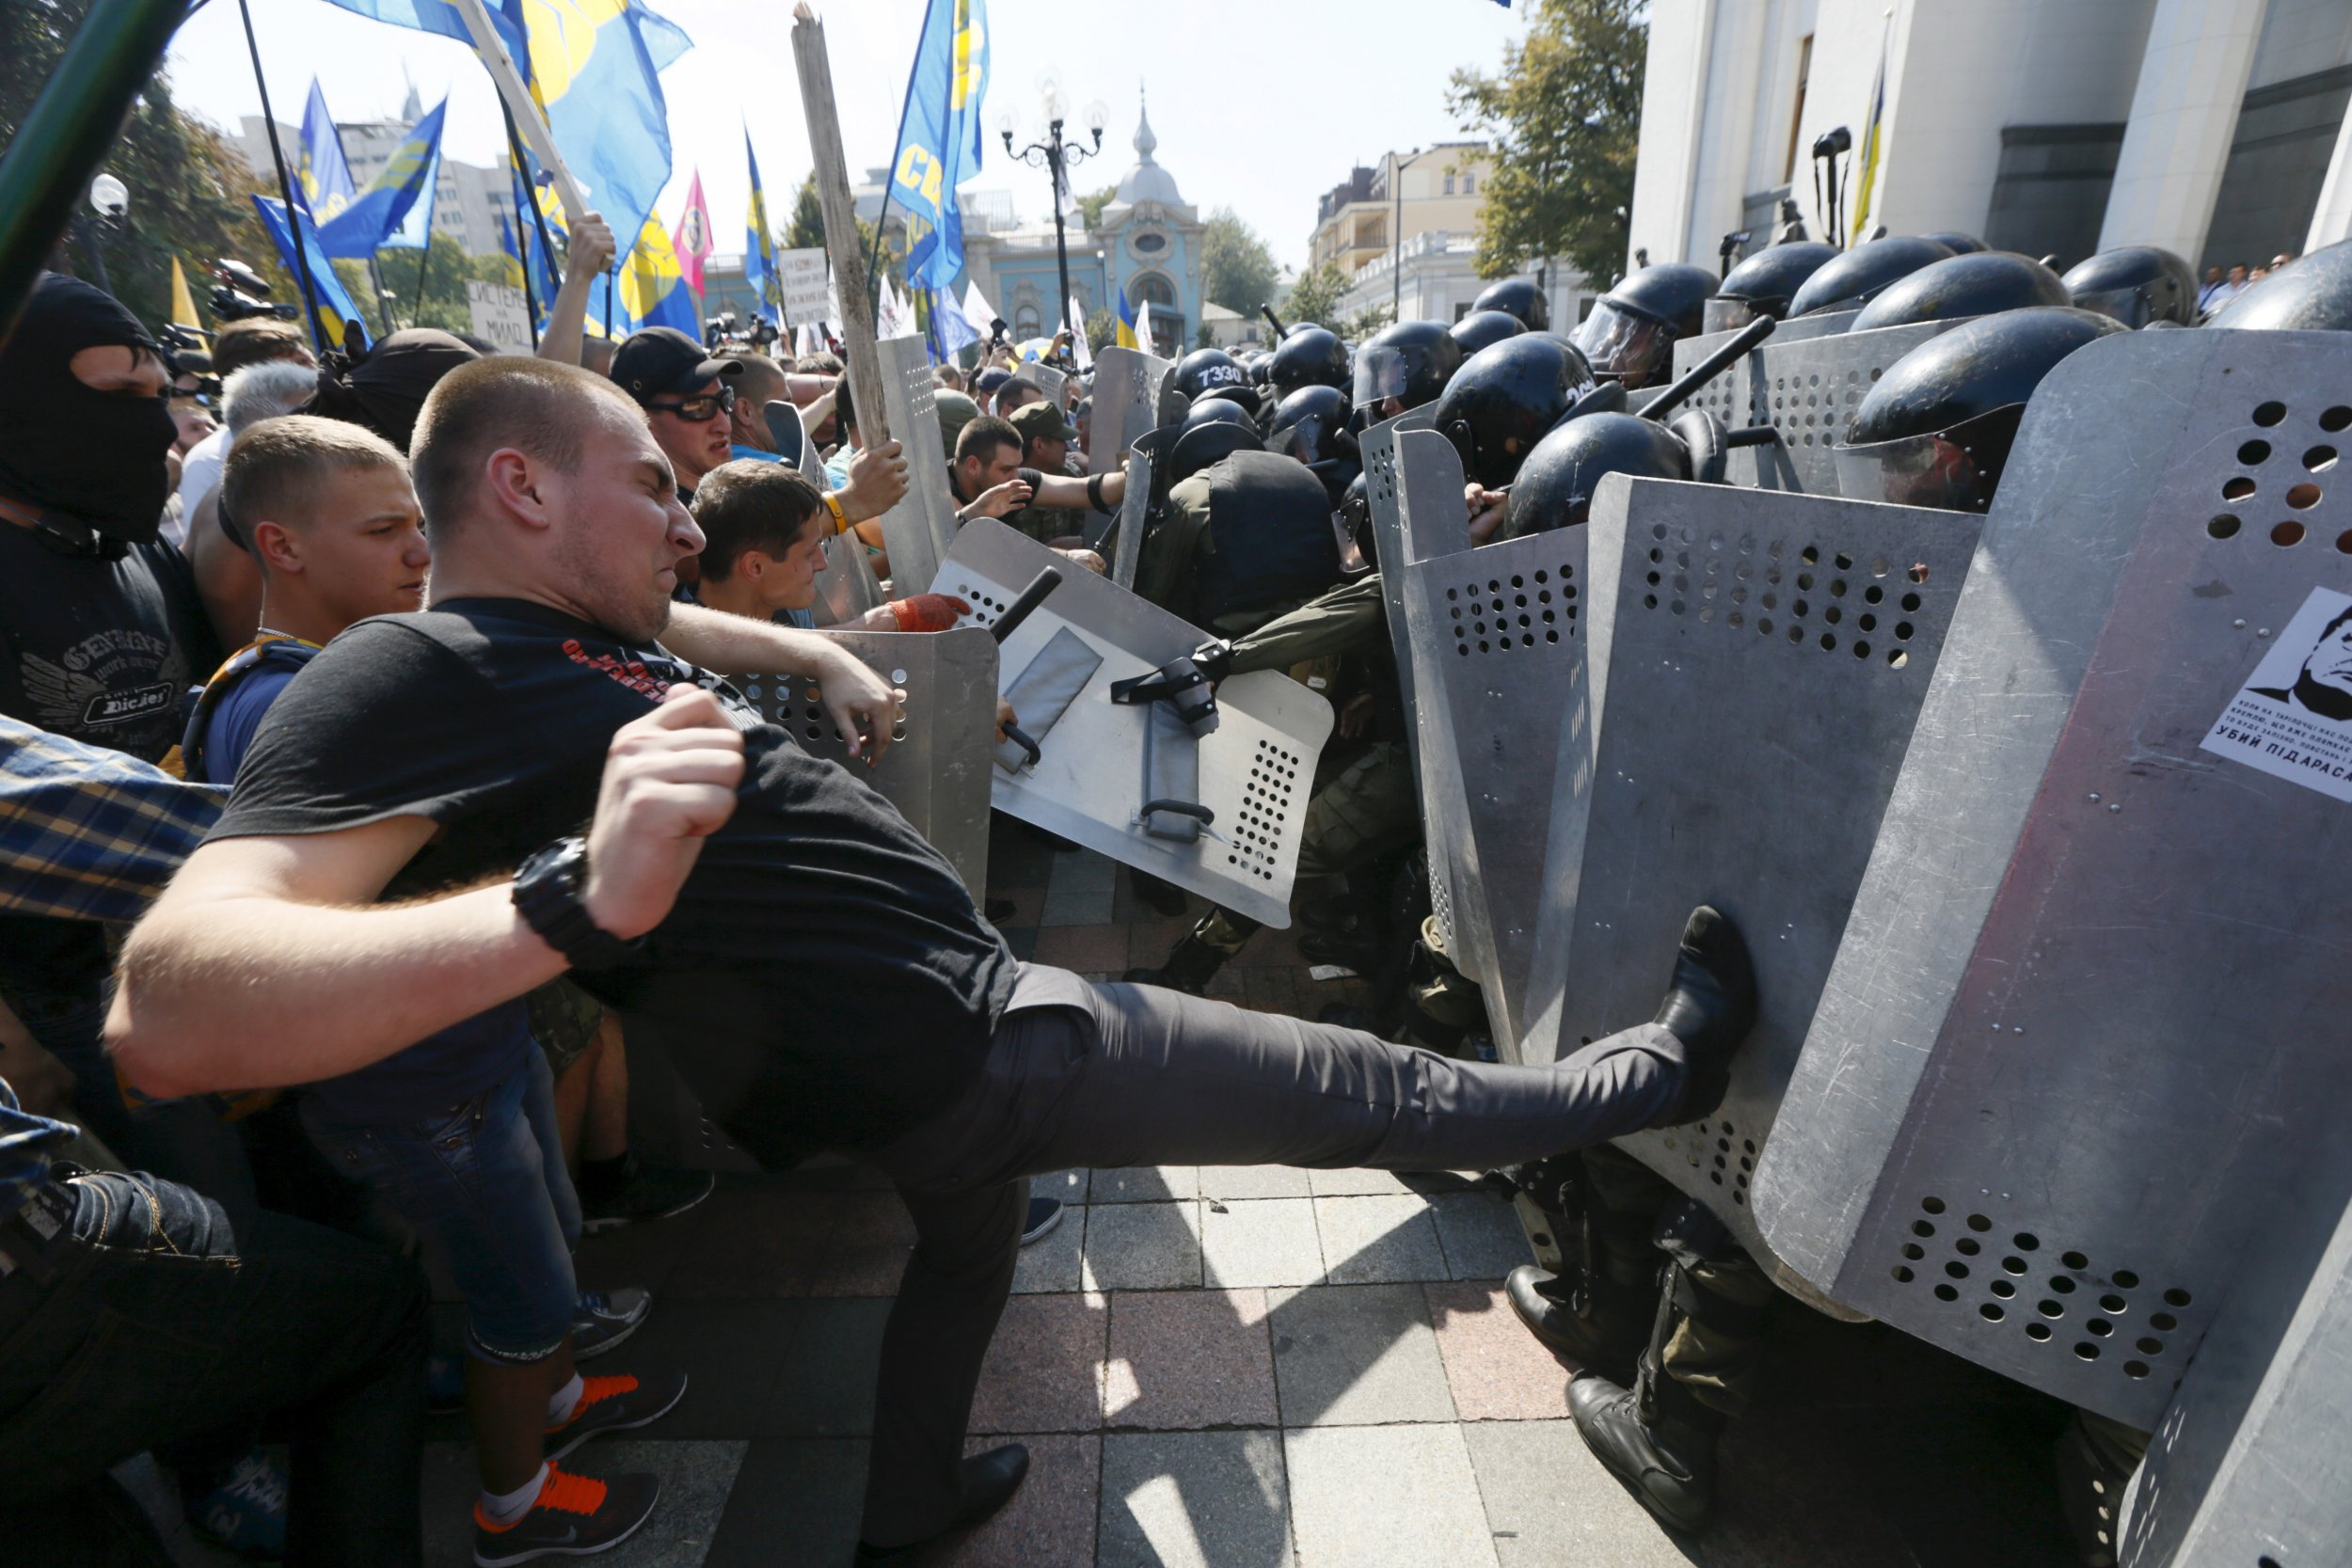 Putin's War: Kiev Protests Reflect Frustration With War ...